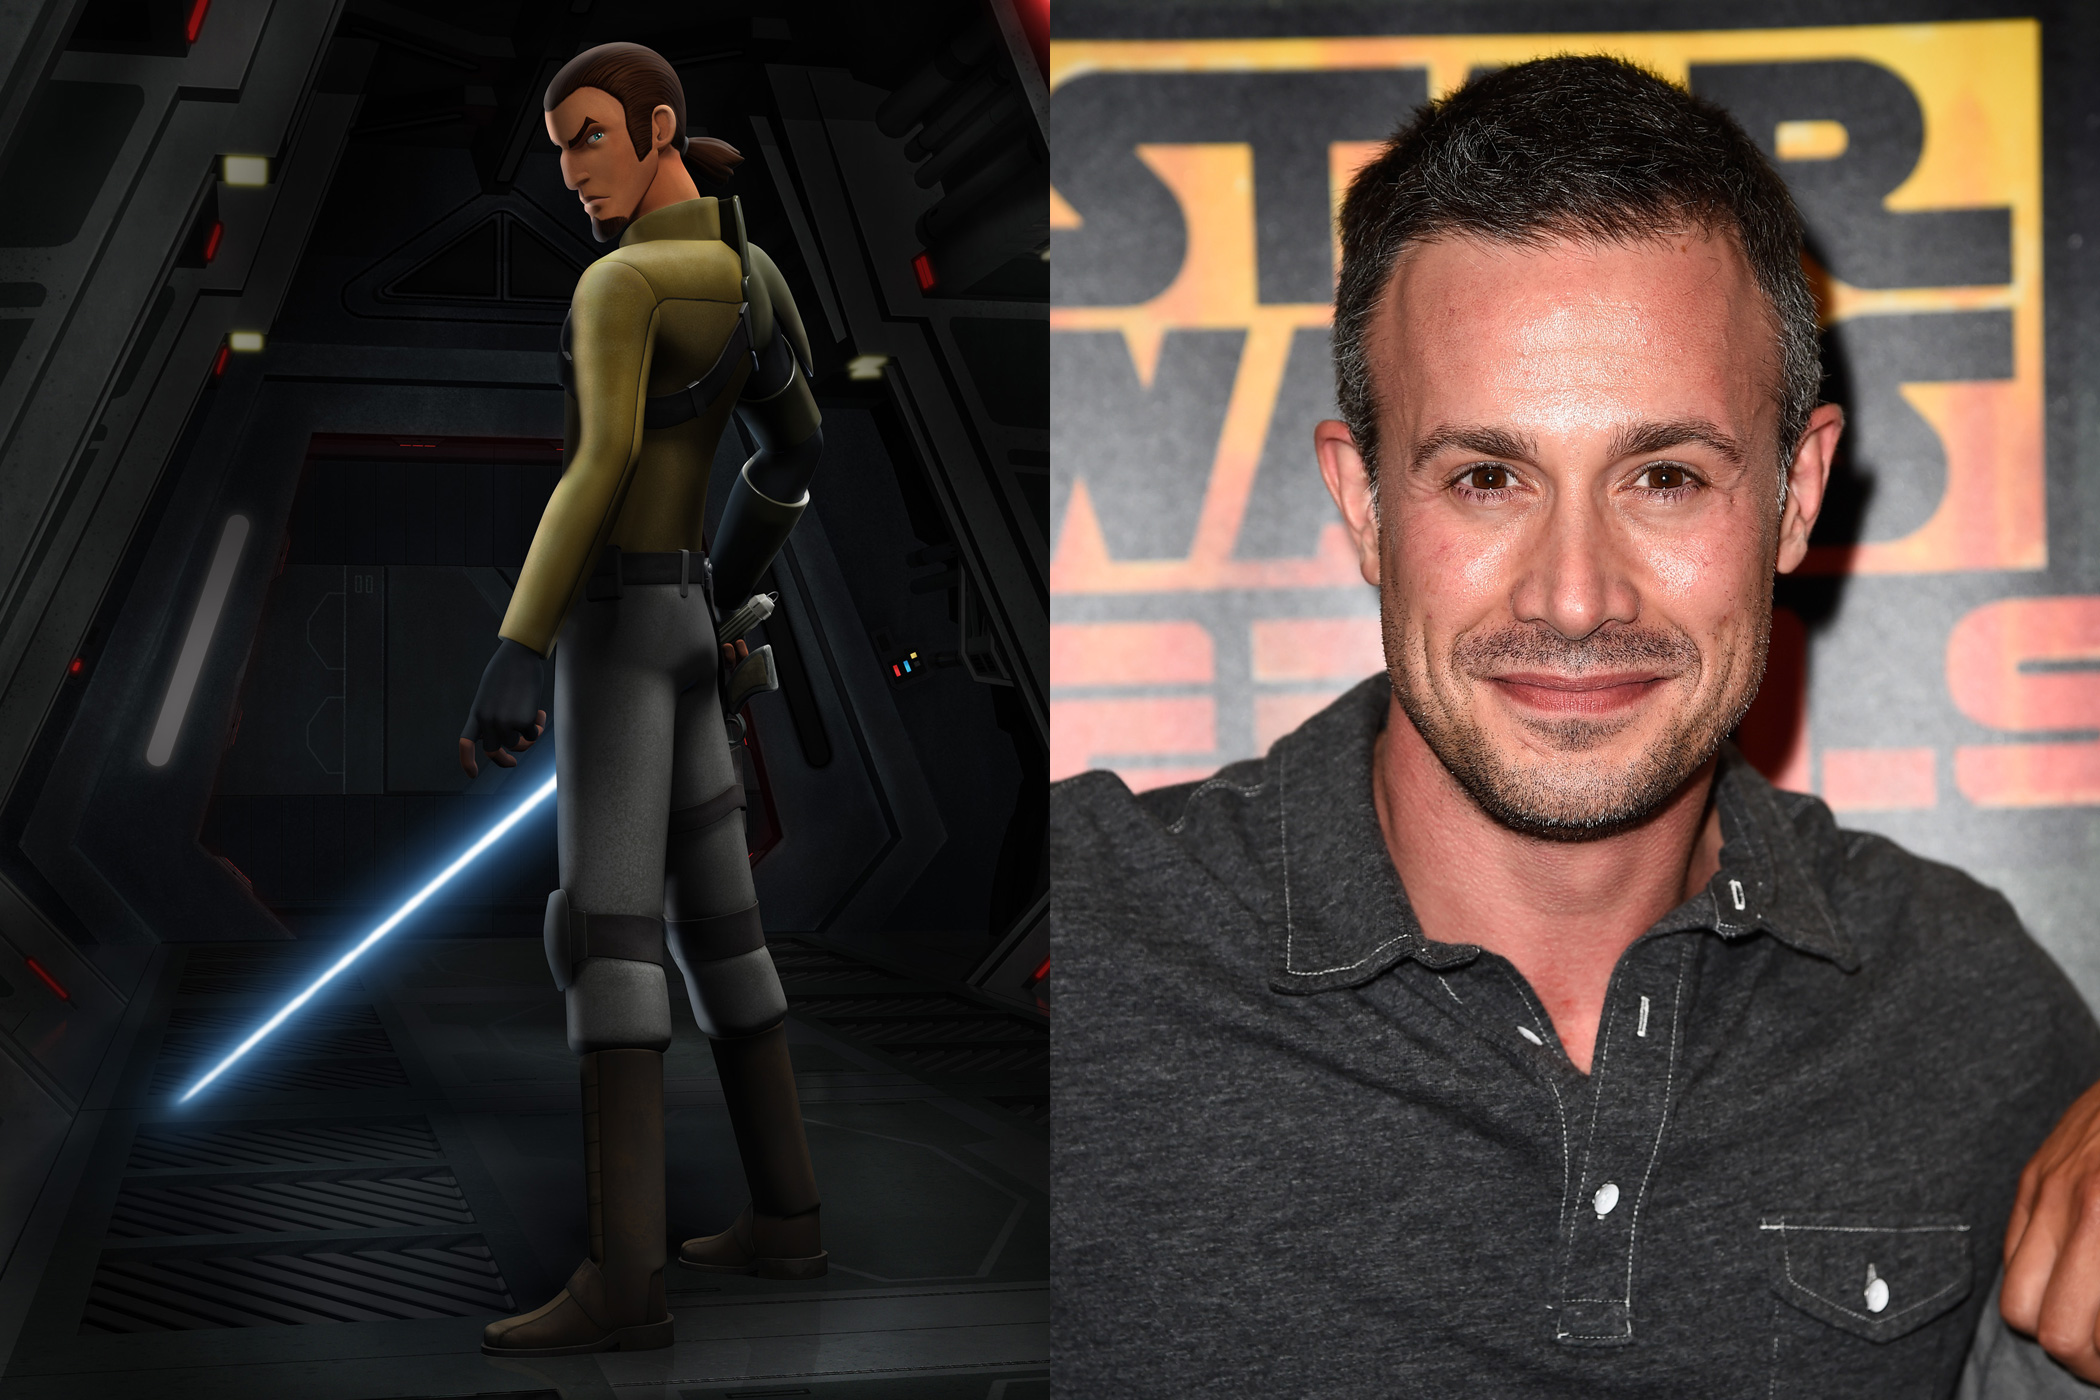 Freddie Prinze Jr., the 90s heartthrob and movie star, is back to voice Kanan, a Jedi in Disney's latest animated series, <i>Star Wars Rebels</i>.